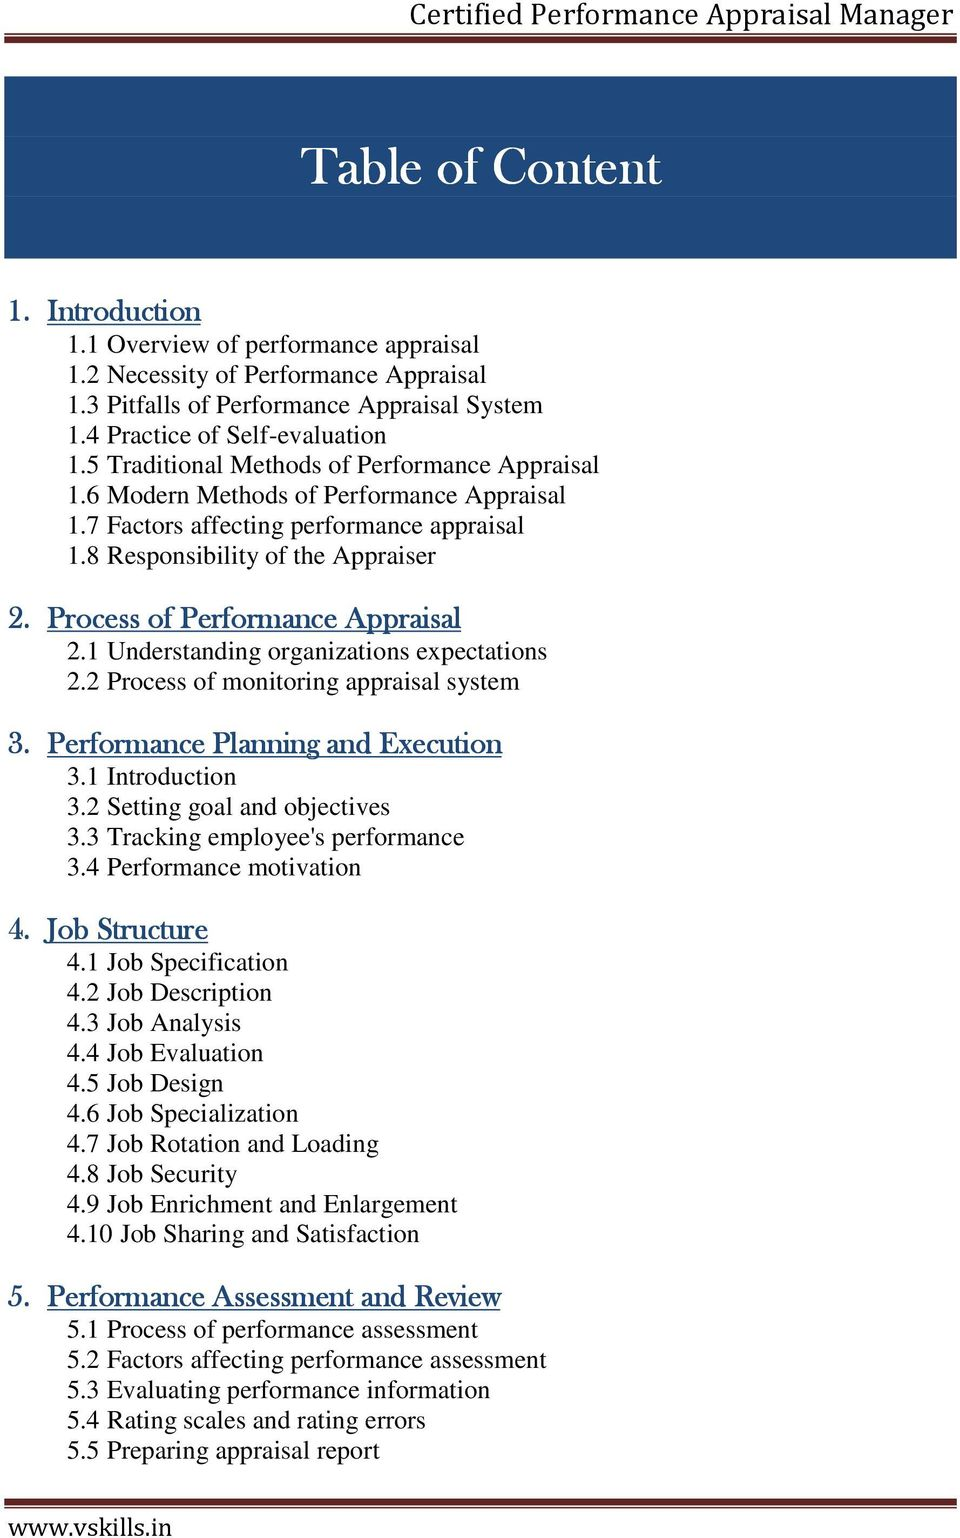 Process of Performance Appraisal 2.1 Understanding organizations expectations 2.2 Process of monitoring appraisal system 3. Performance Planning and Execution 3.1 Introduction 3.